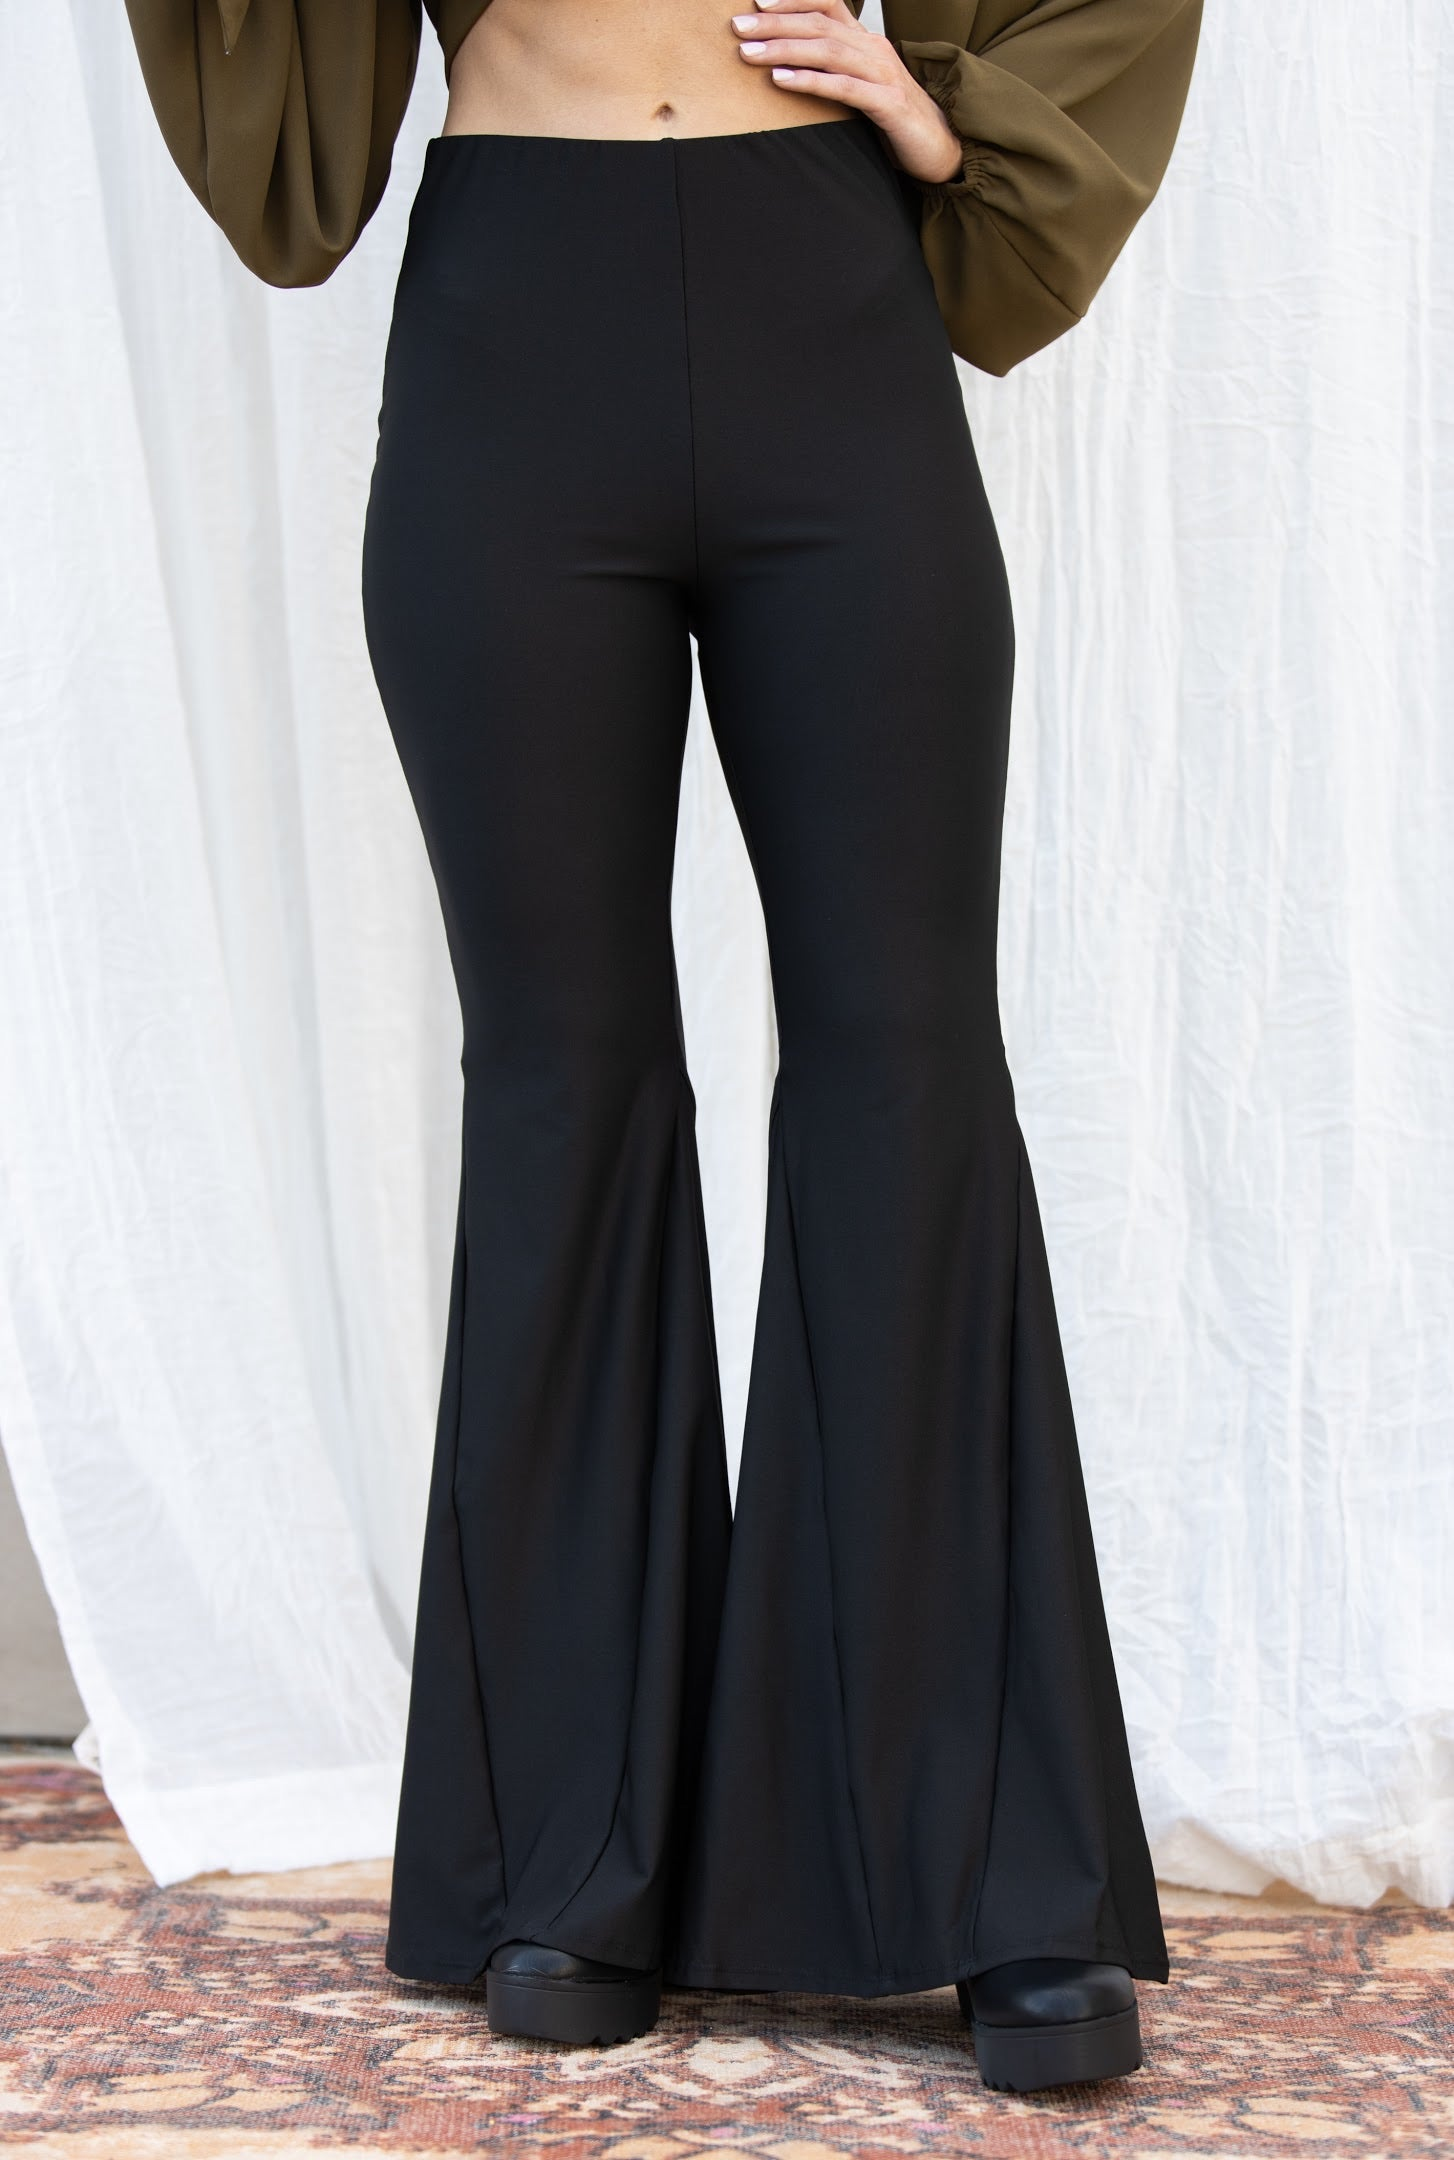 Can't Hold Back Stretchy Black Flares